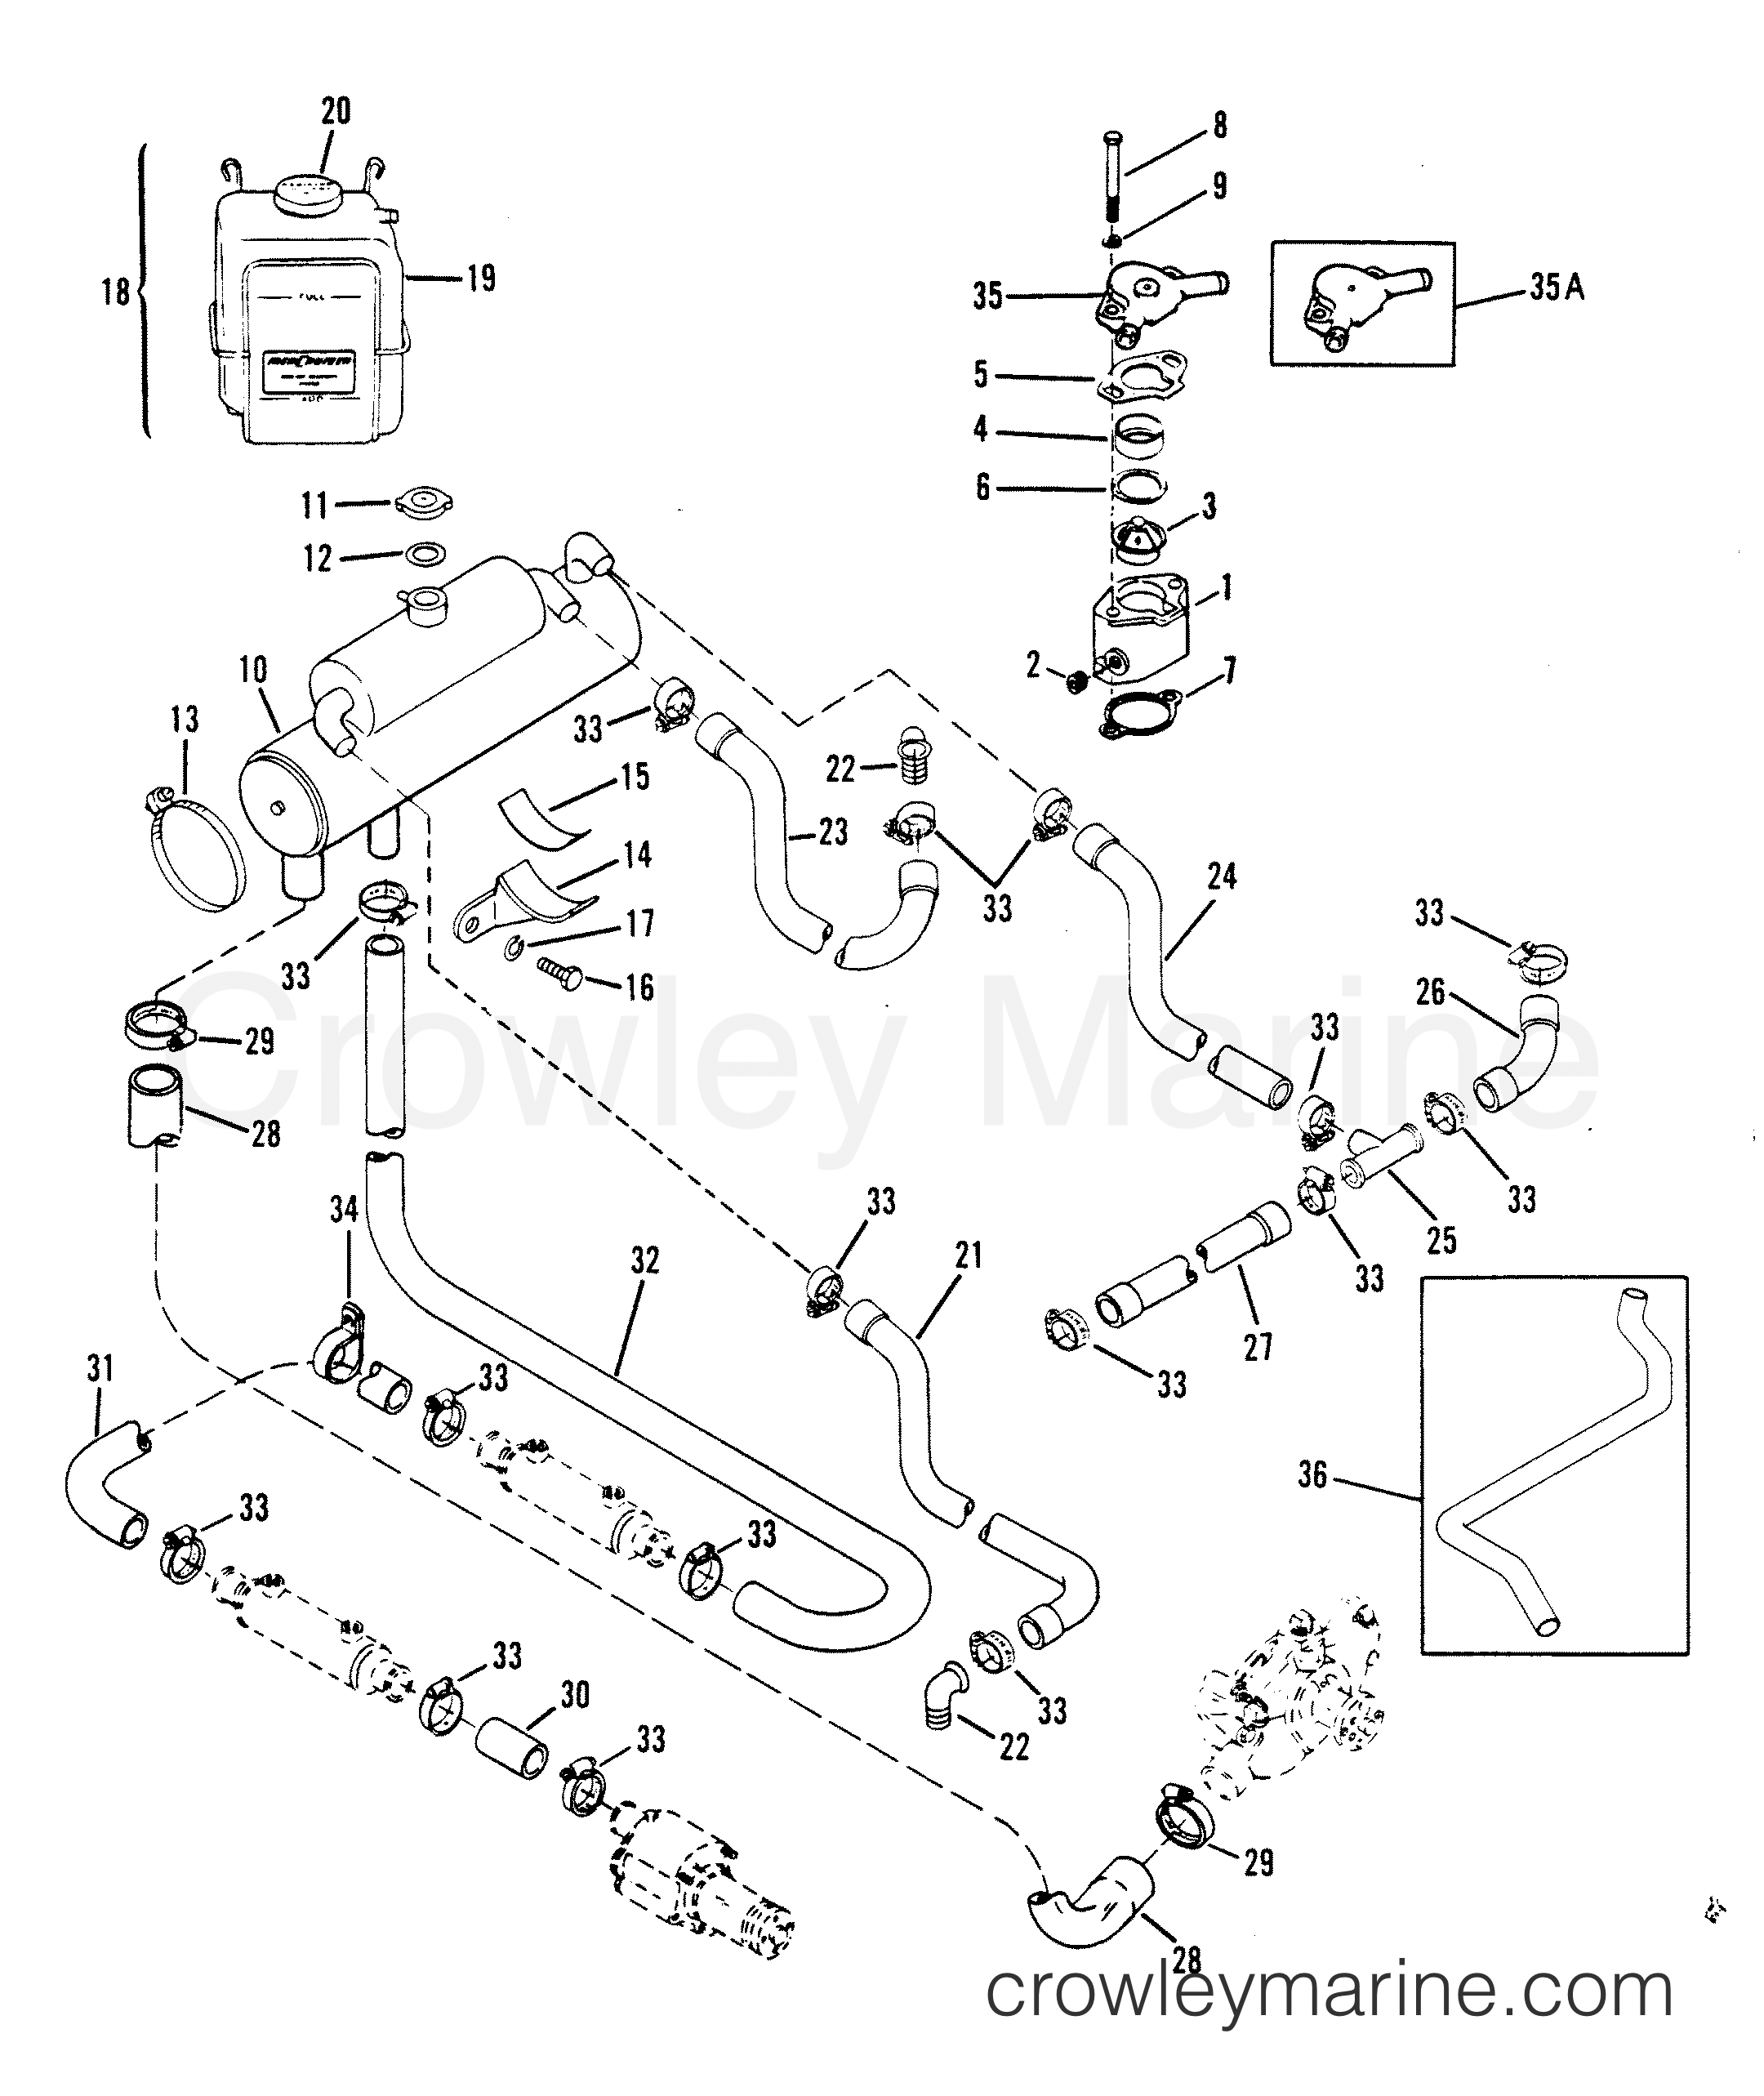 1993 mercruiser exhaust parts diagram  vacuum  auto wiring